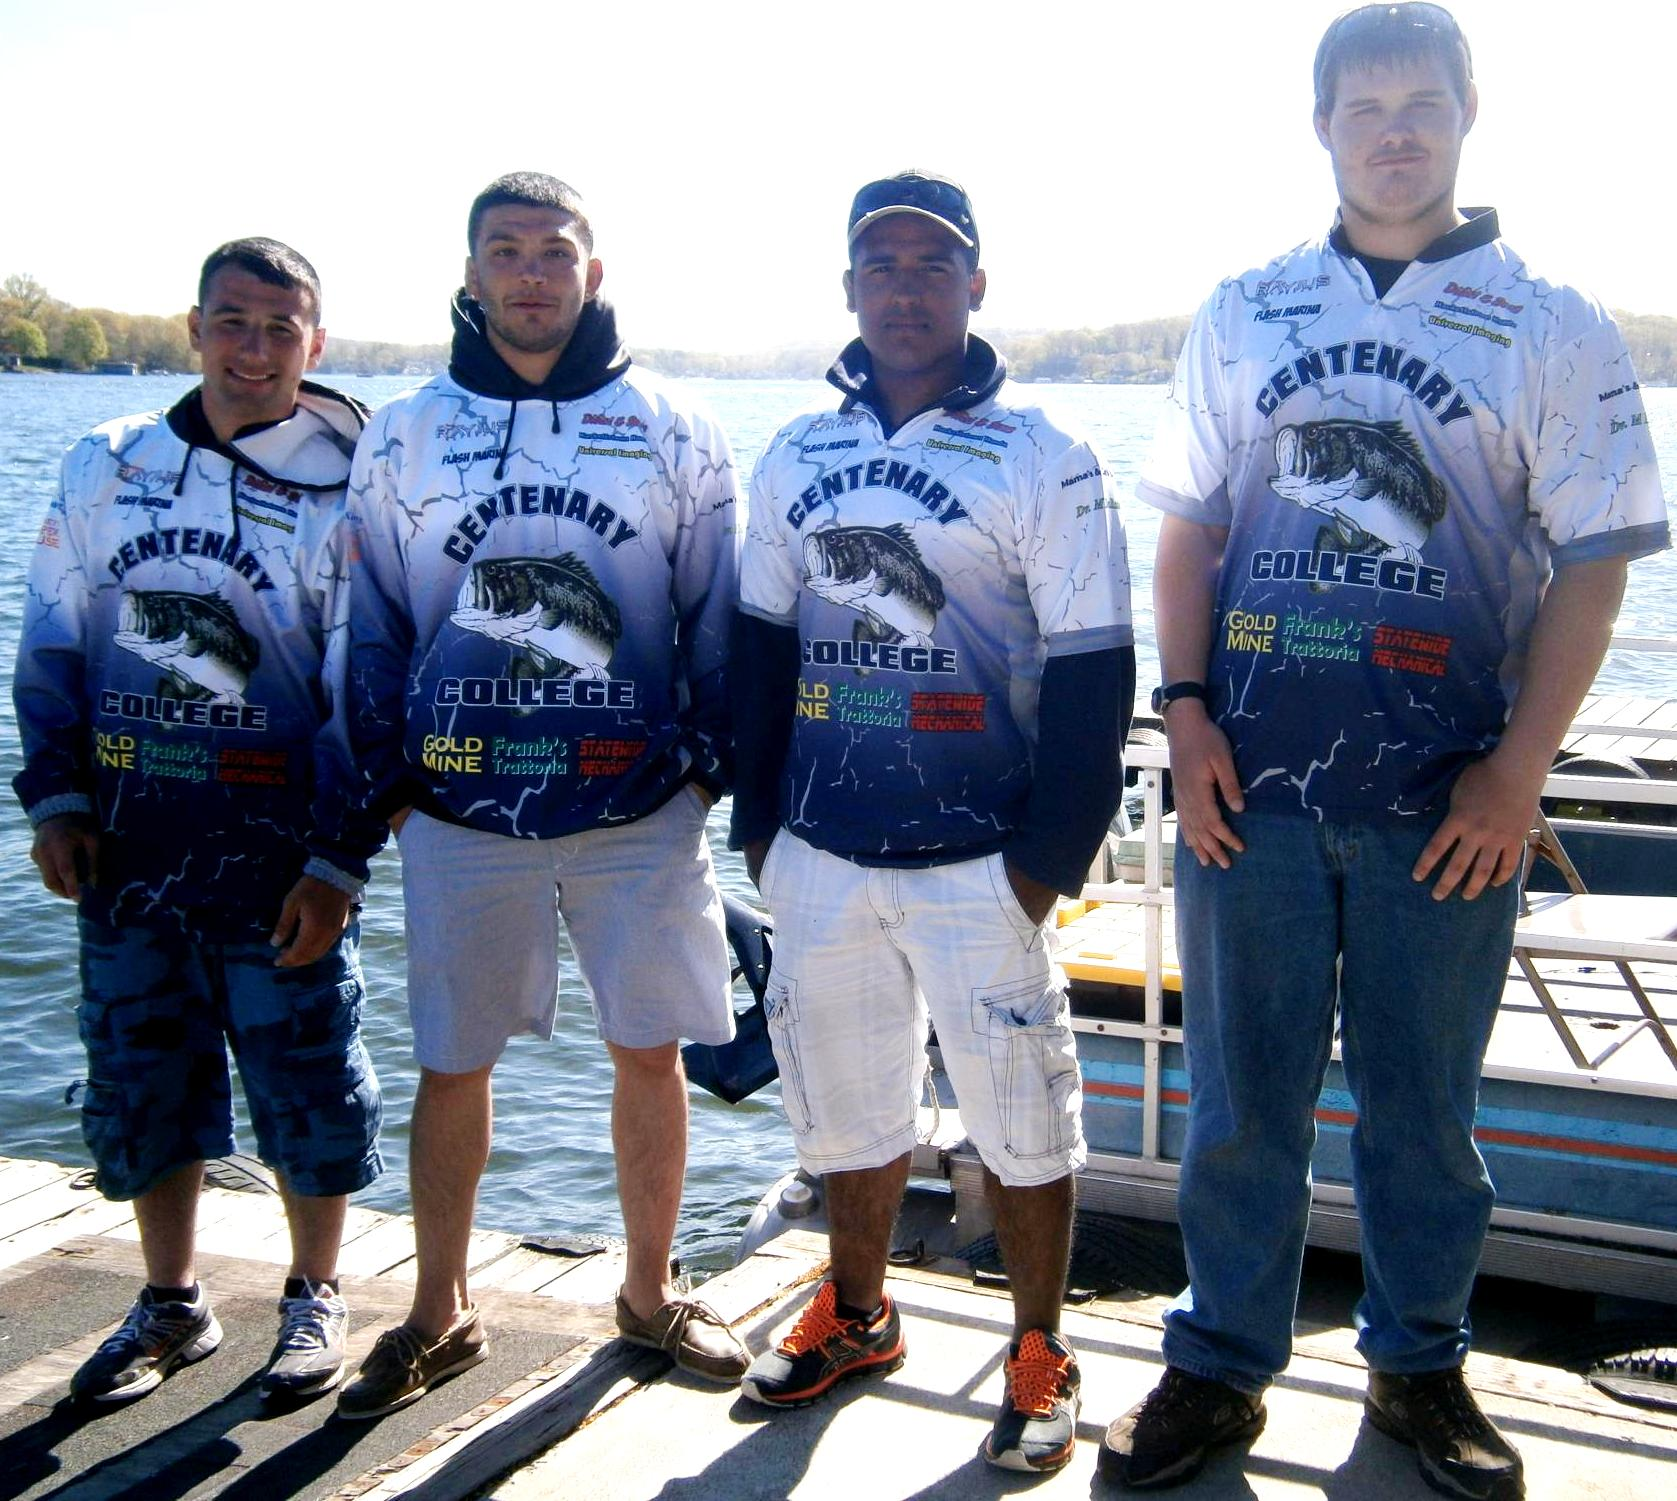 Centenary college bass fishing team for Fishing team shirts